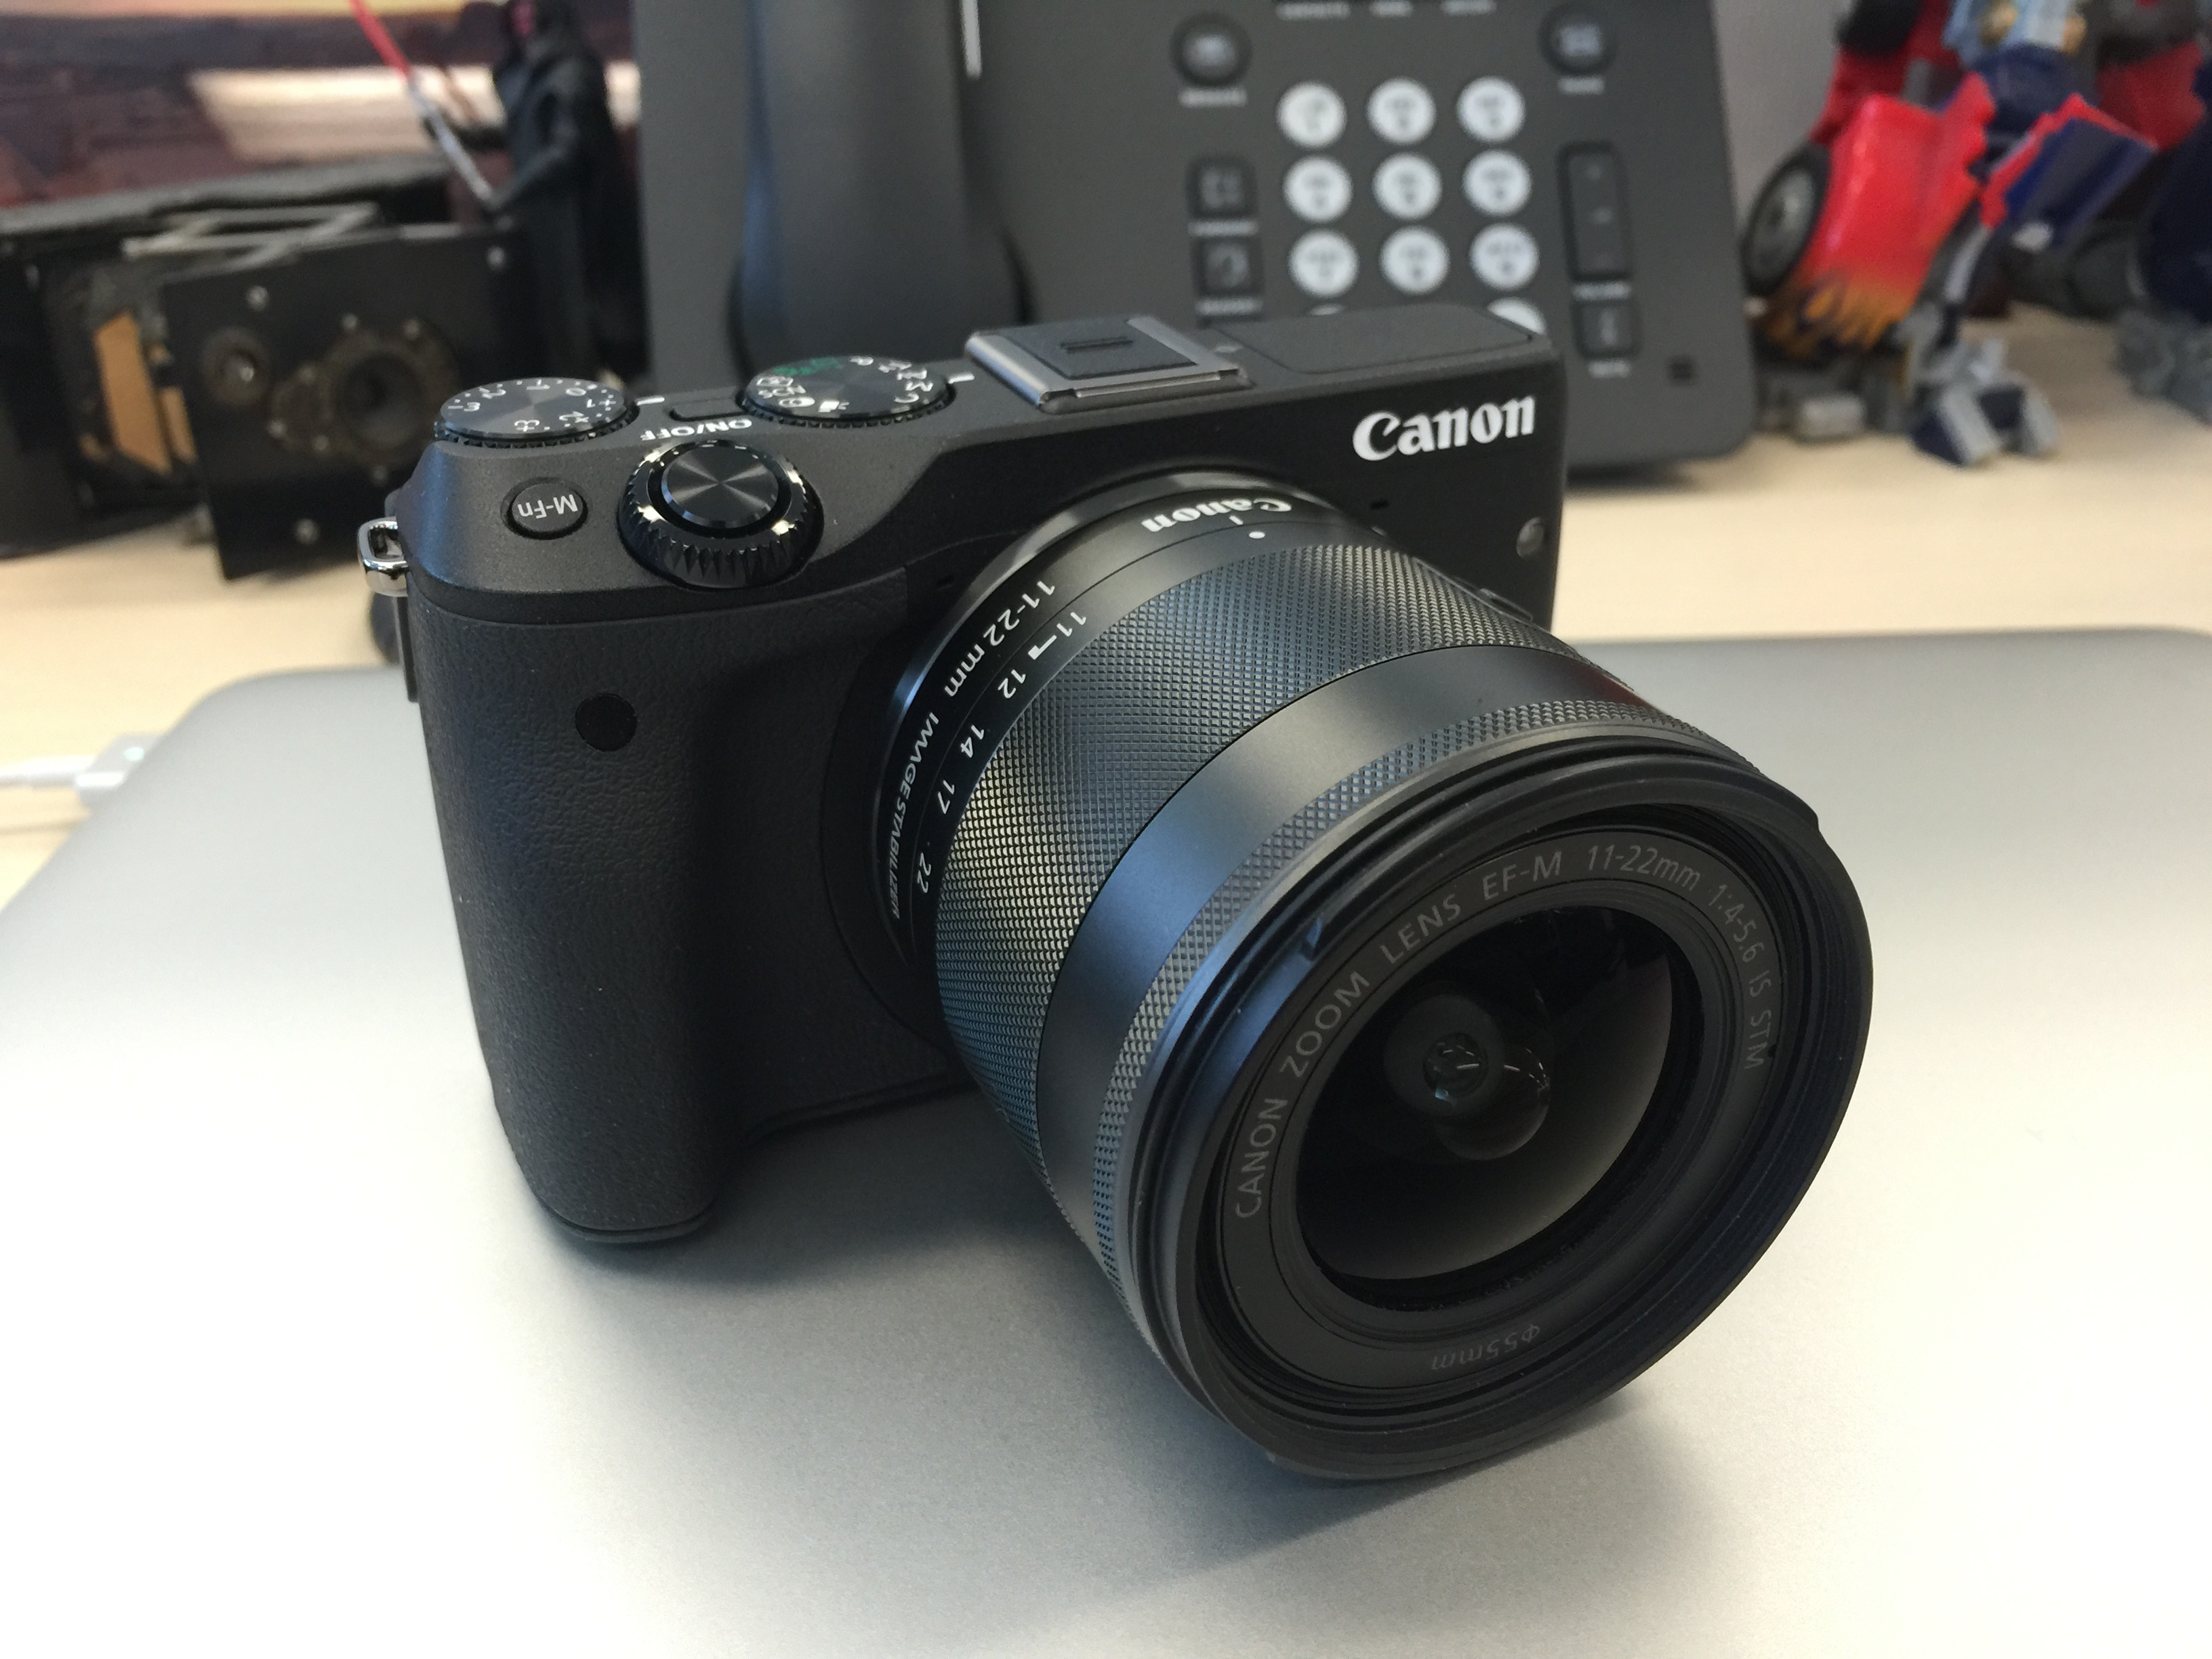 Canon EOS M3... a small camera